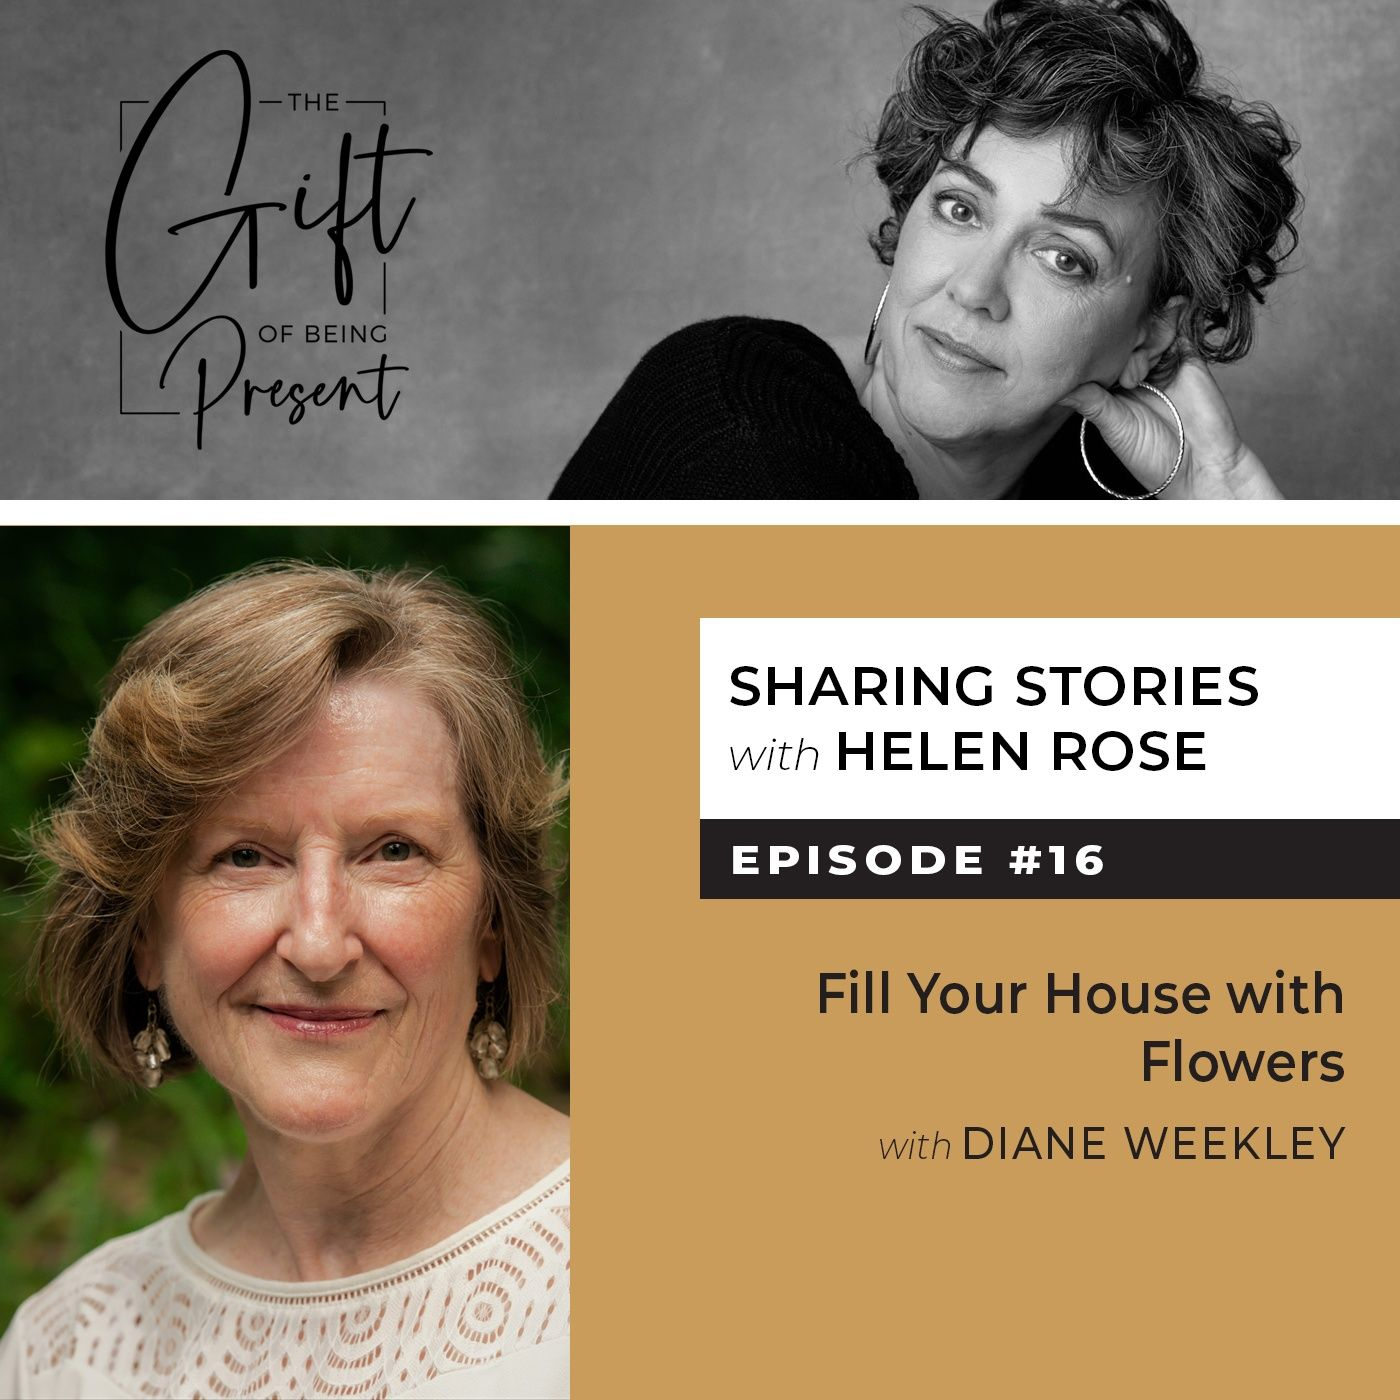 Fill Your House with Flowers with Diane Weekley